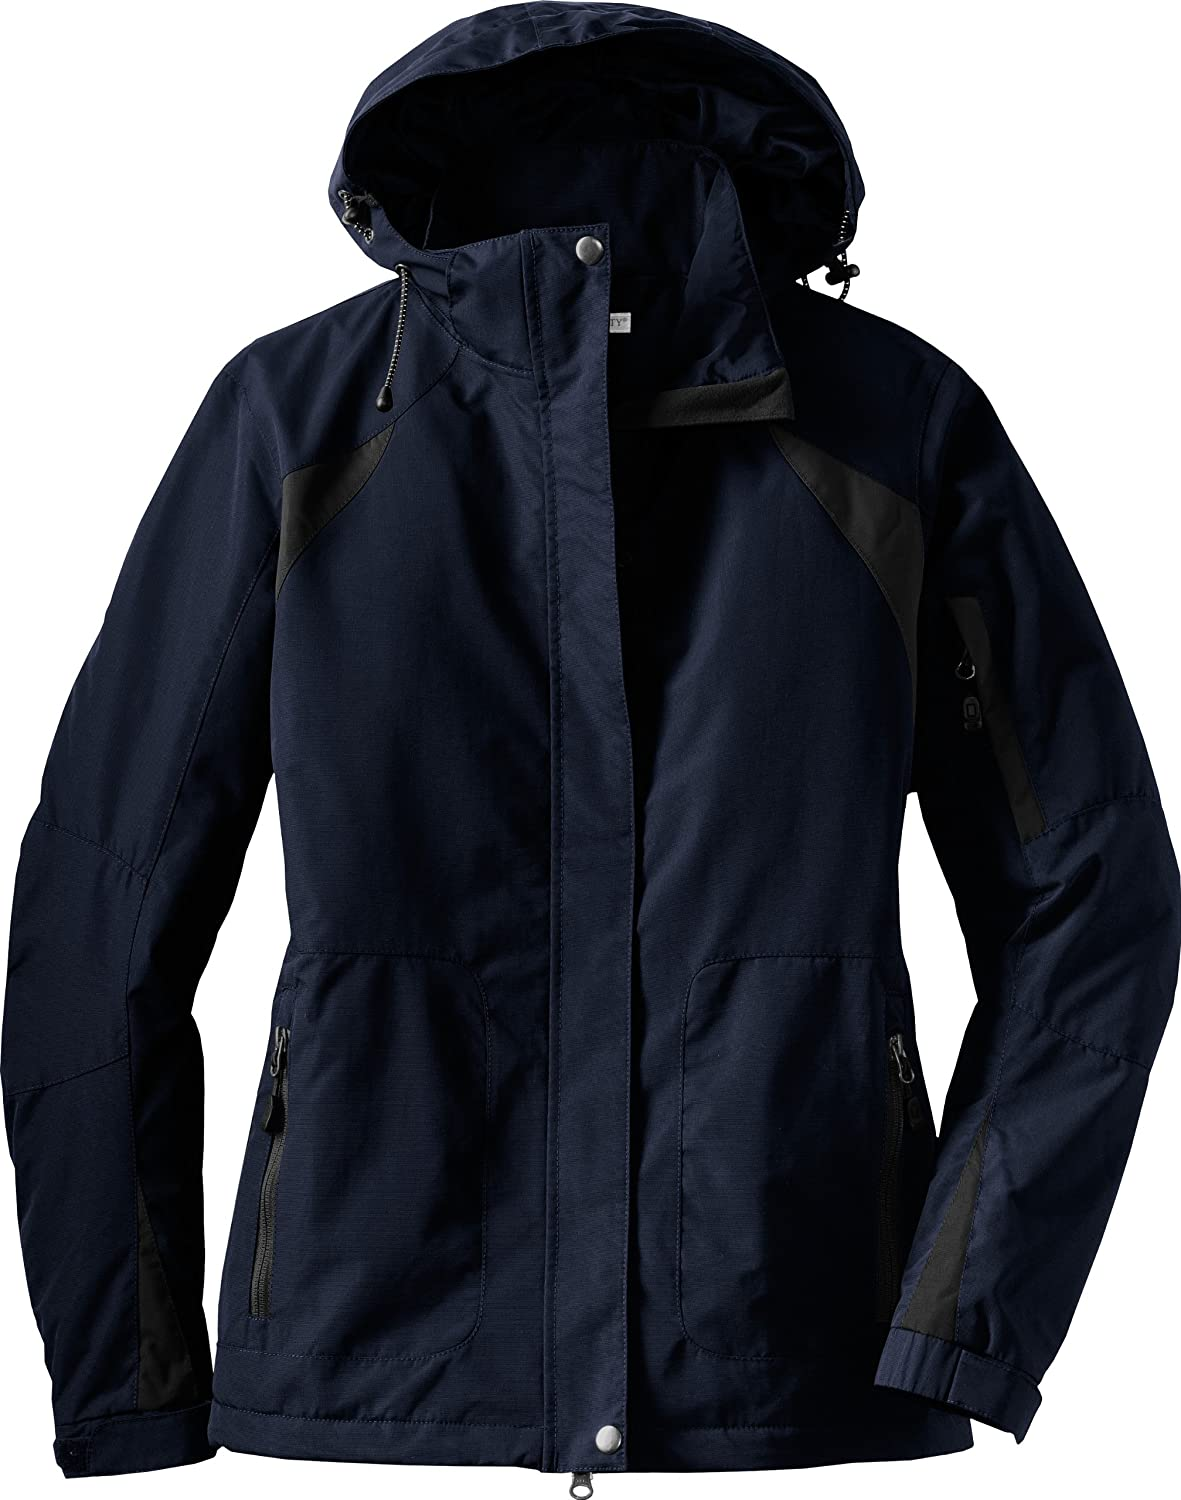 Port Authority - Ladies All-Season II Jacket.